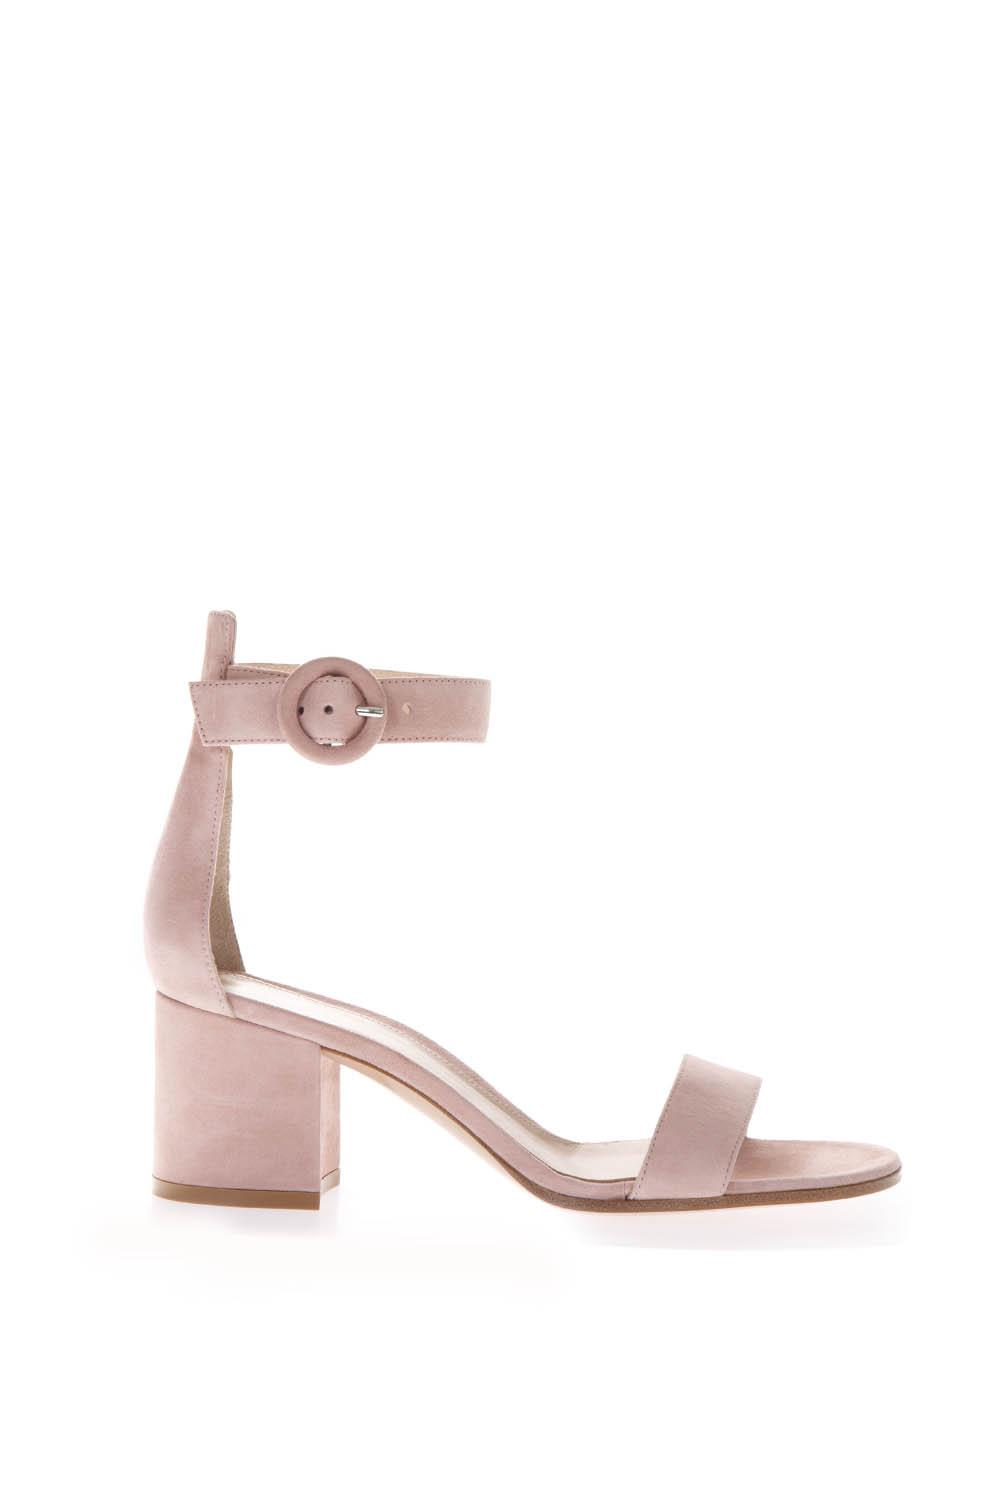 7be4aadbca PINK SUEDE SANDALS WITH 40MM CHUNKY SS 2019 - GIANVITO ROSSI - Boutique  Galiano